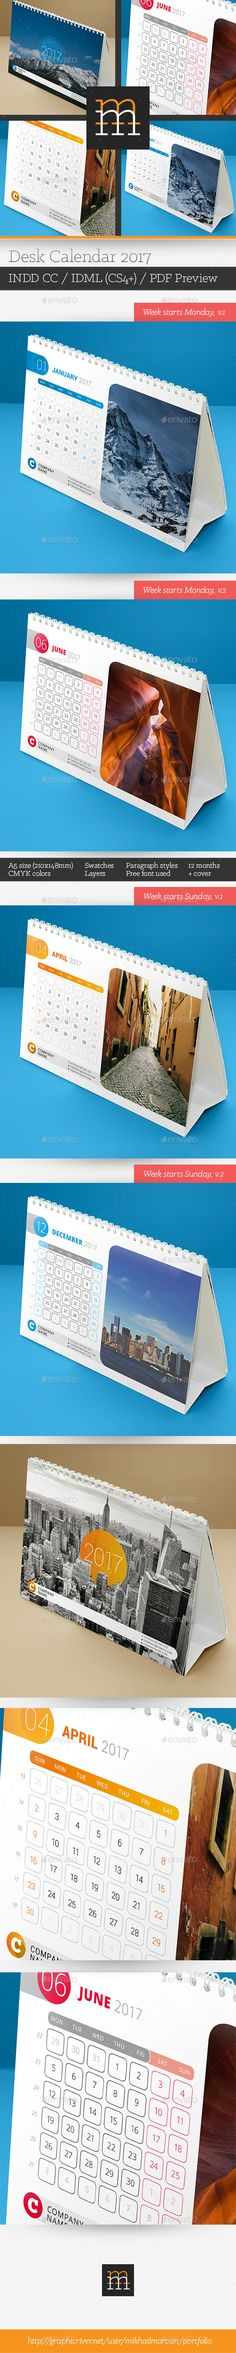 Desk Calendar   Desk Calendars Calendar Design And Template